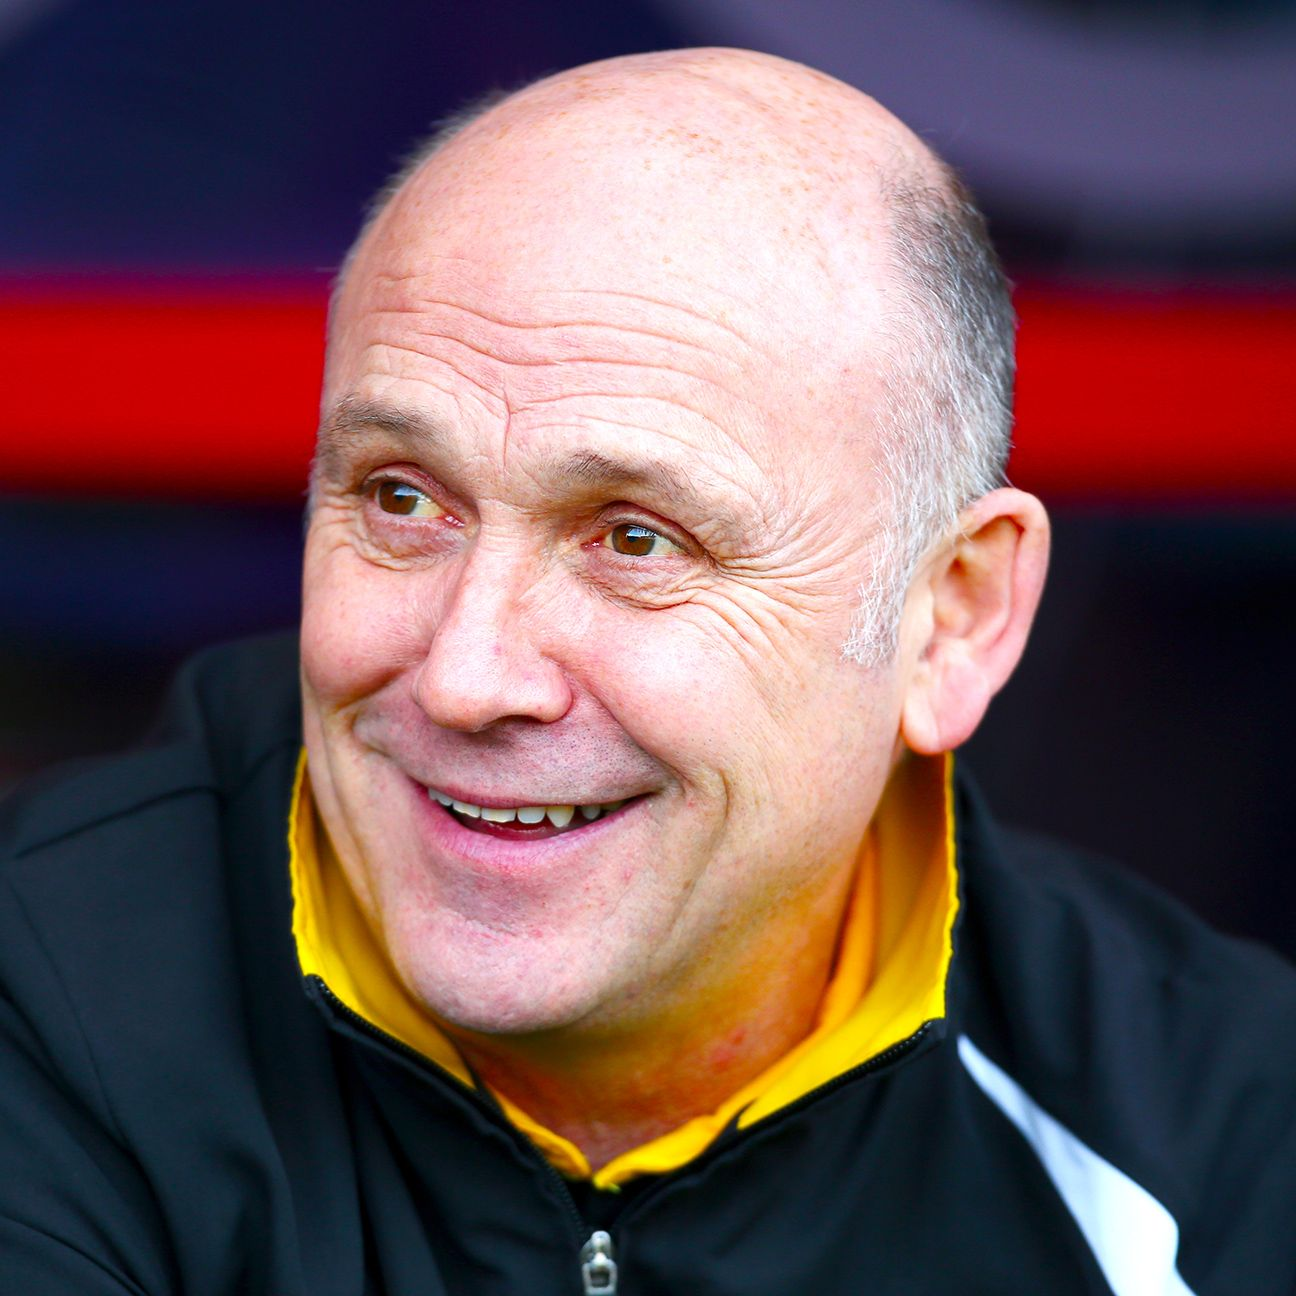 Mike Phelan brings a wealth of experience to Steve Bruce's bench at Hull City.